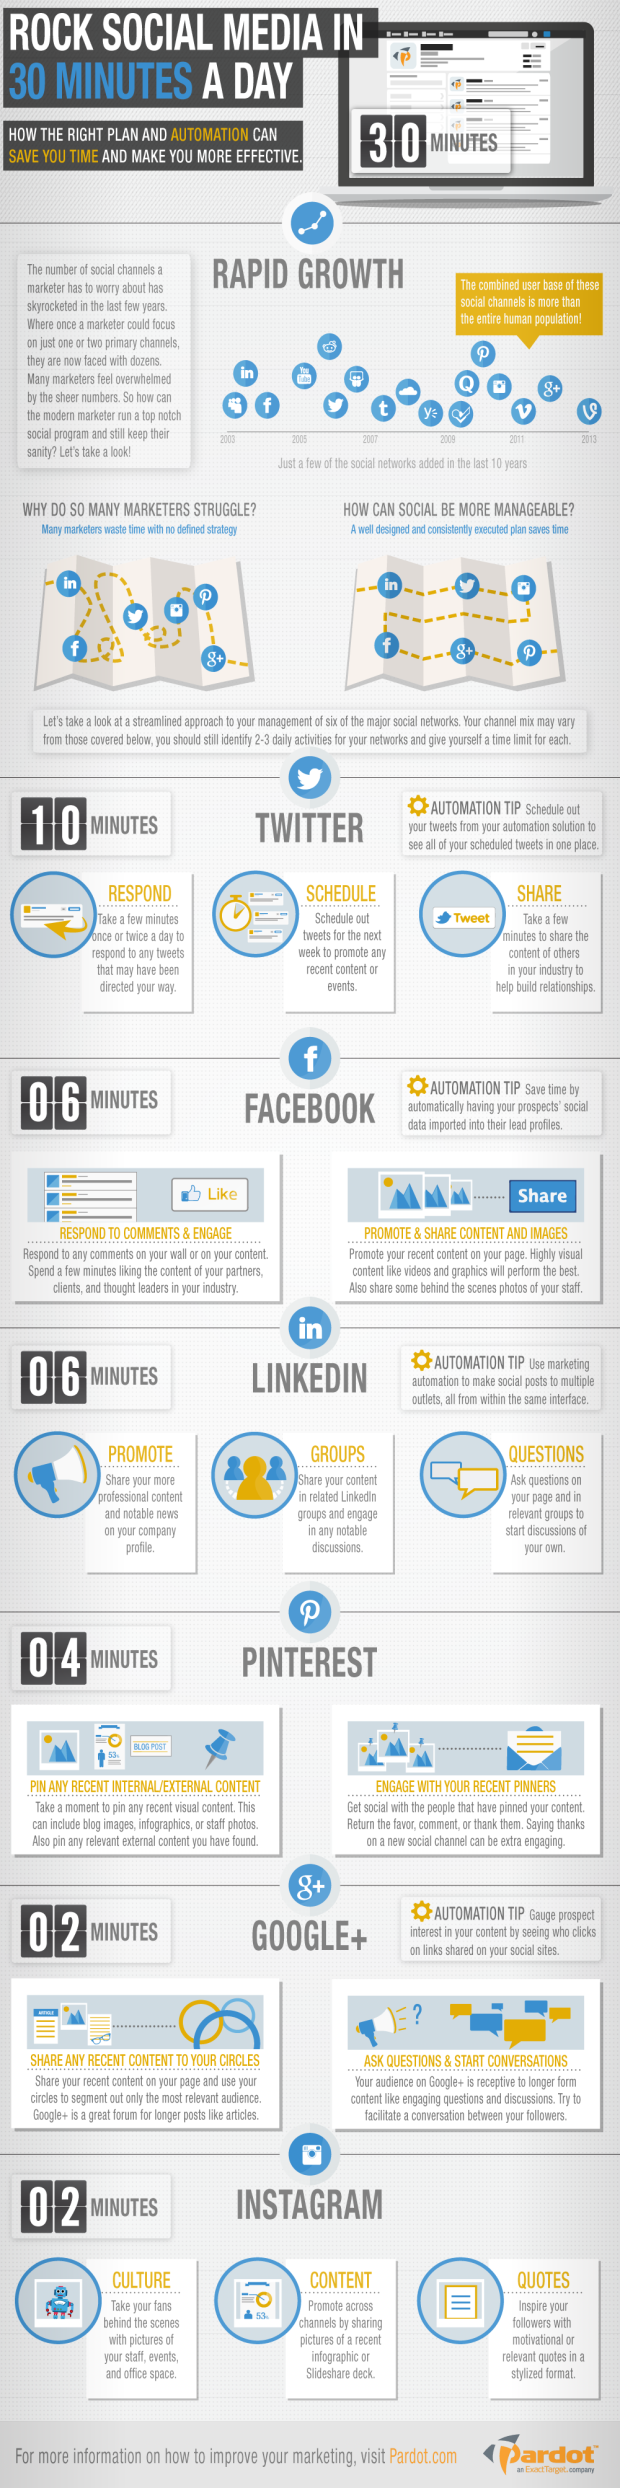 30-minute-social-media-infographic